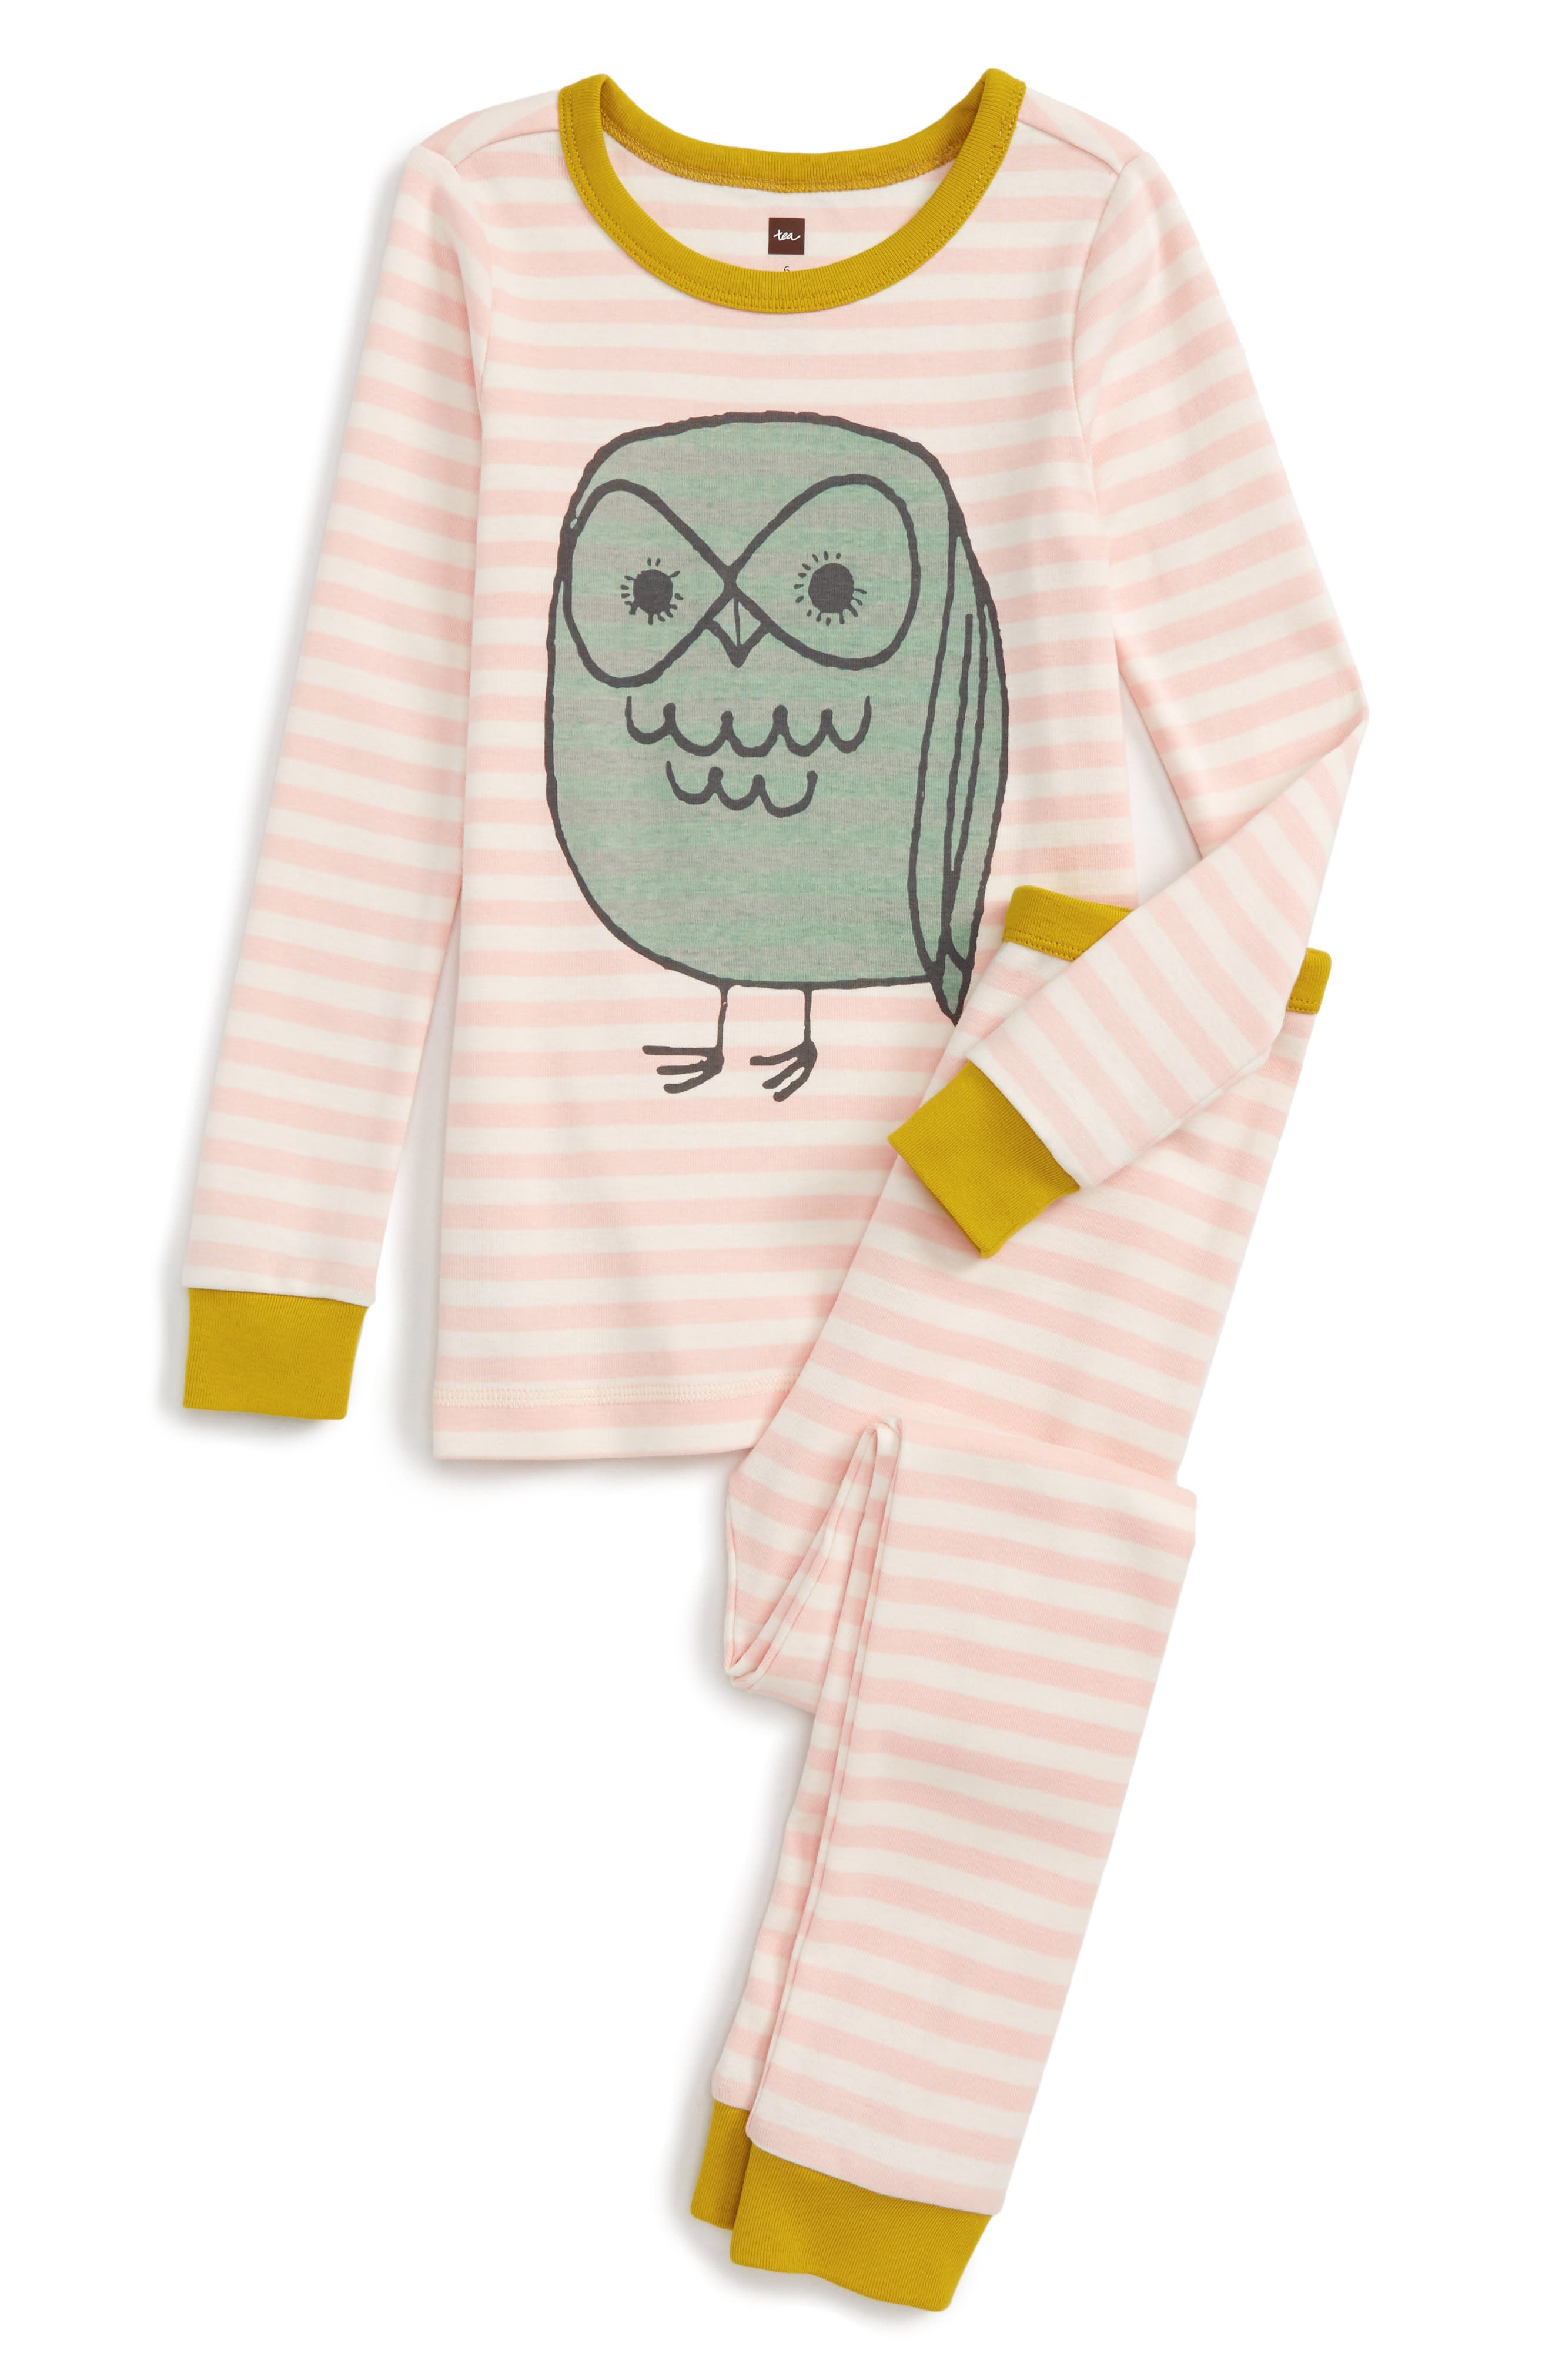 Tawny Owl Fitted Two-Piece Pajamas,                         Main,                         color, Soft Peach